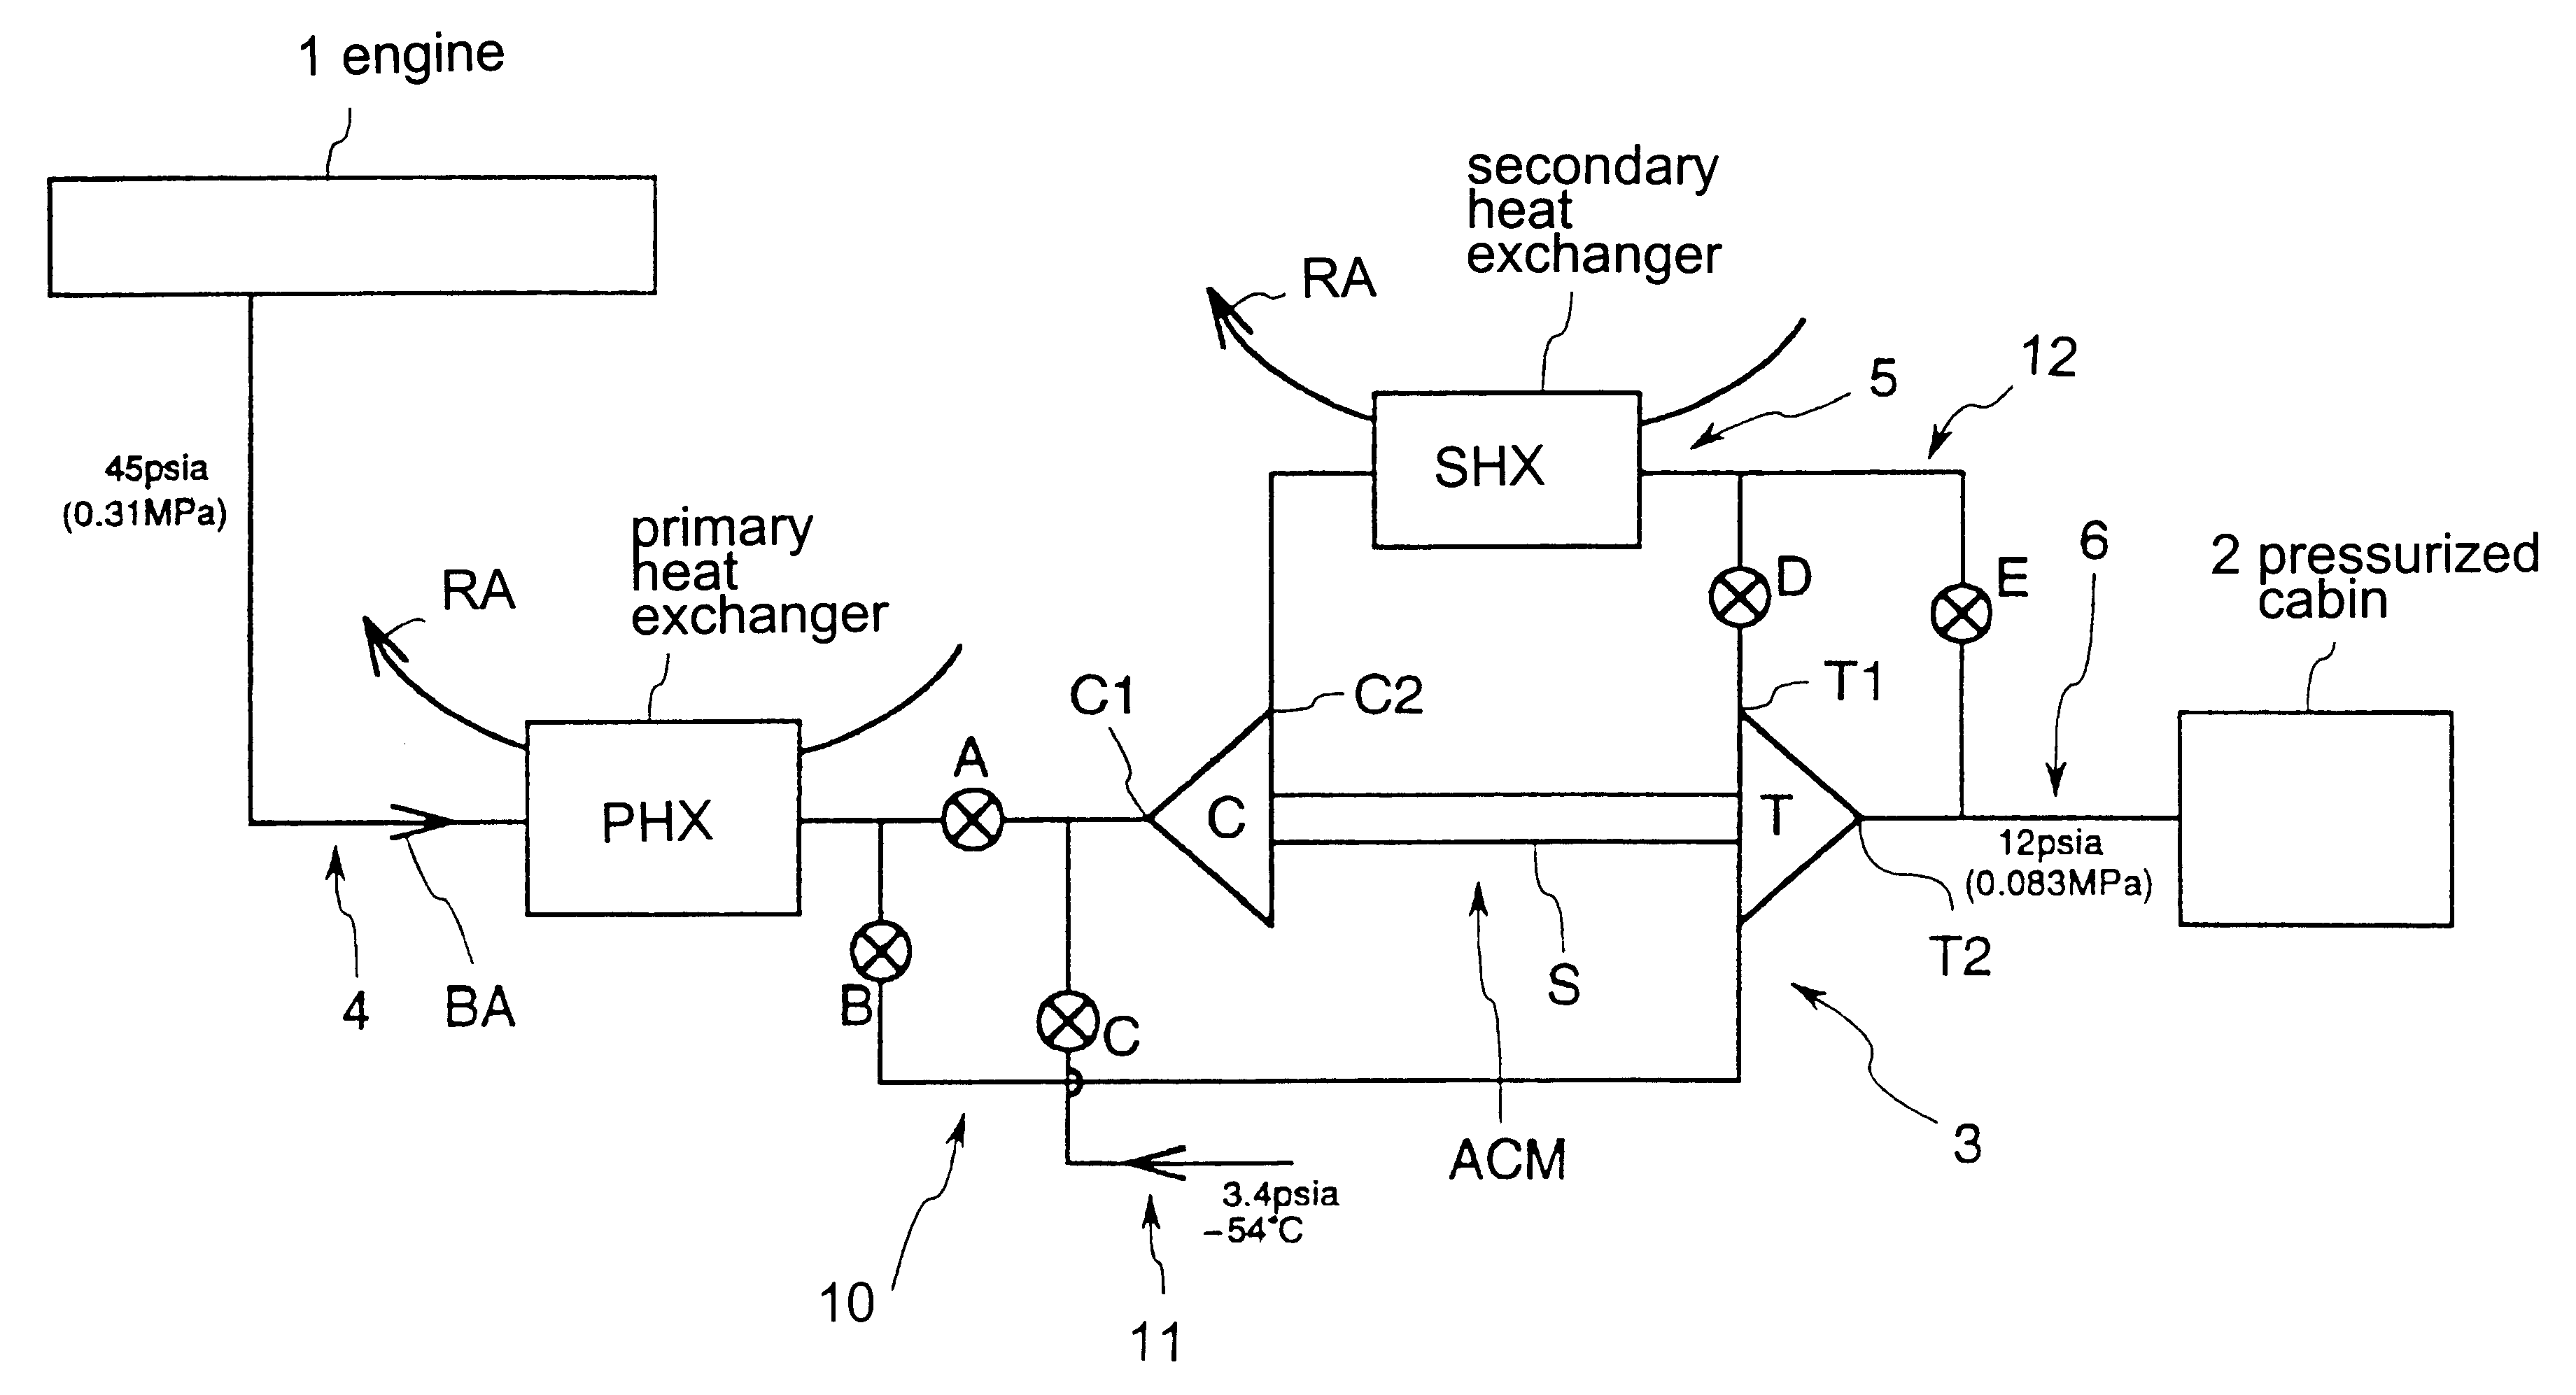 air conditioning system air conditioning system used in aircraft